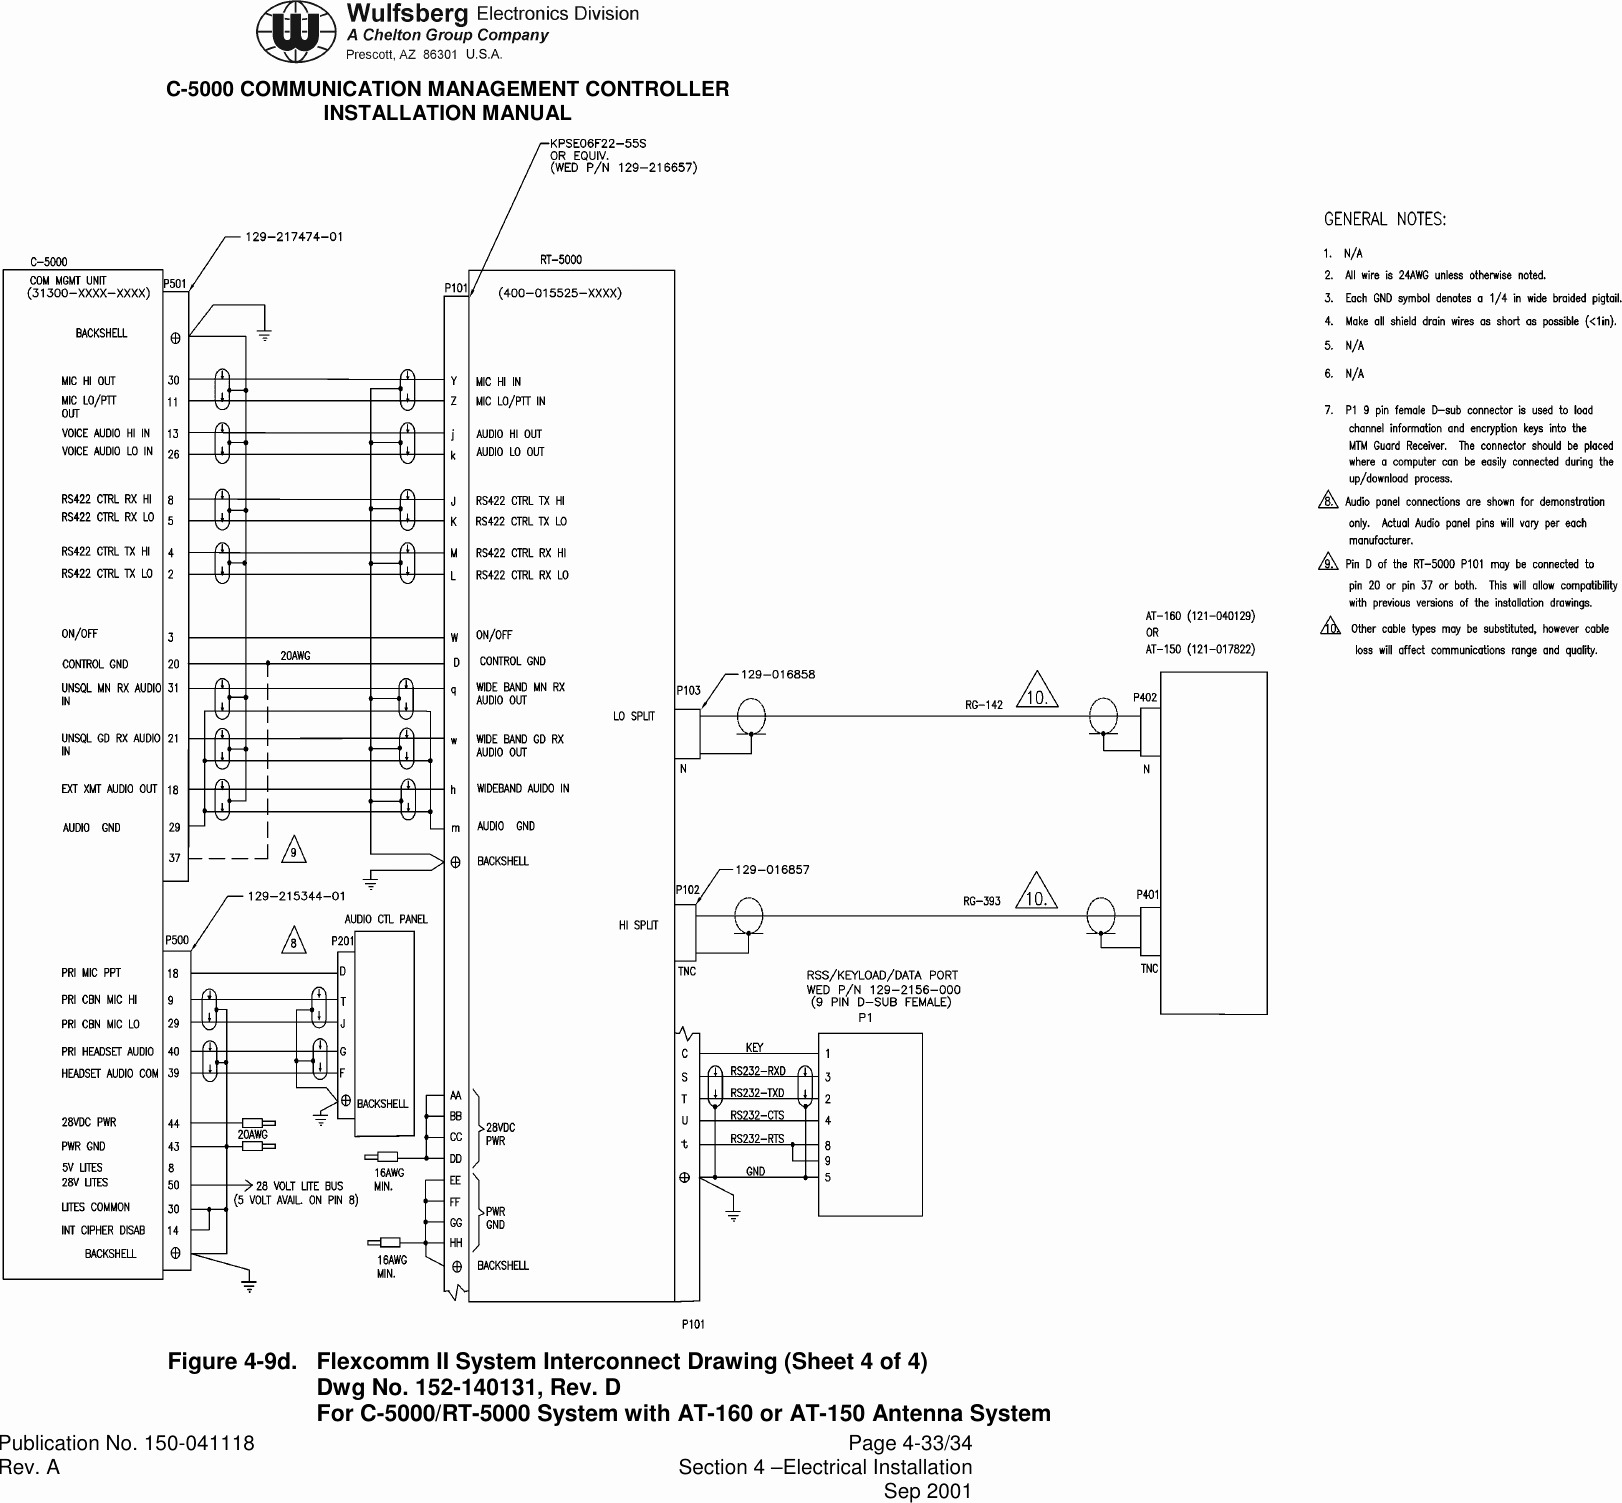 Aircraft Wiring Diagram Software Free Builder For Rt 5000 Transceiver